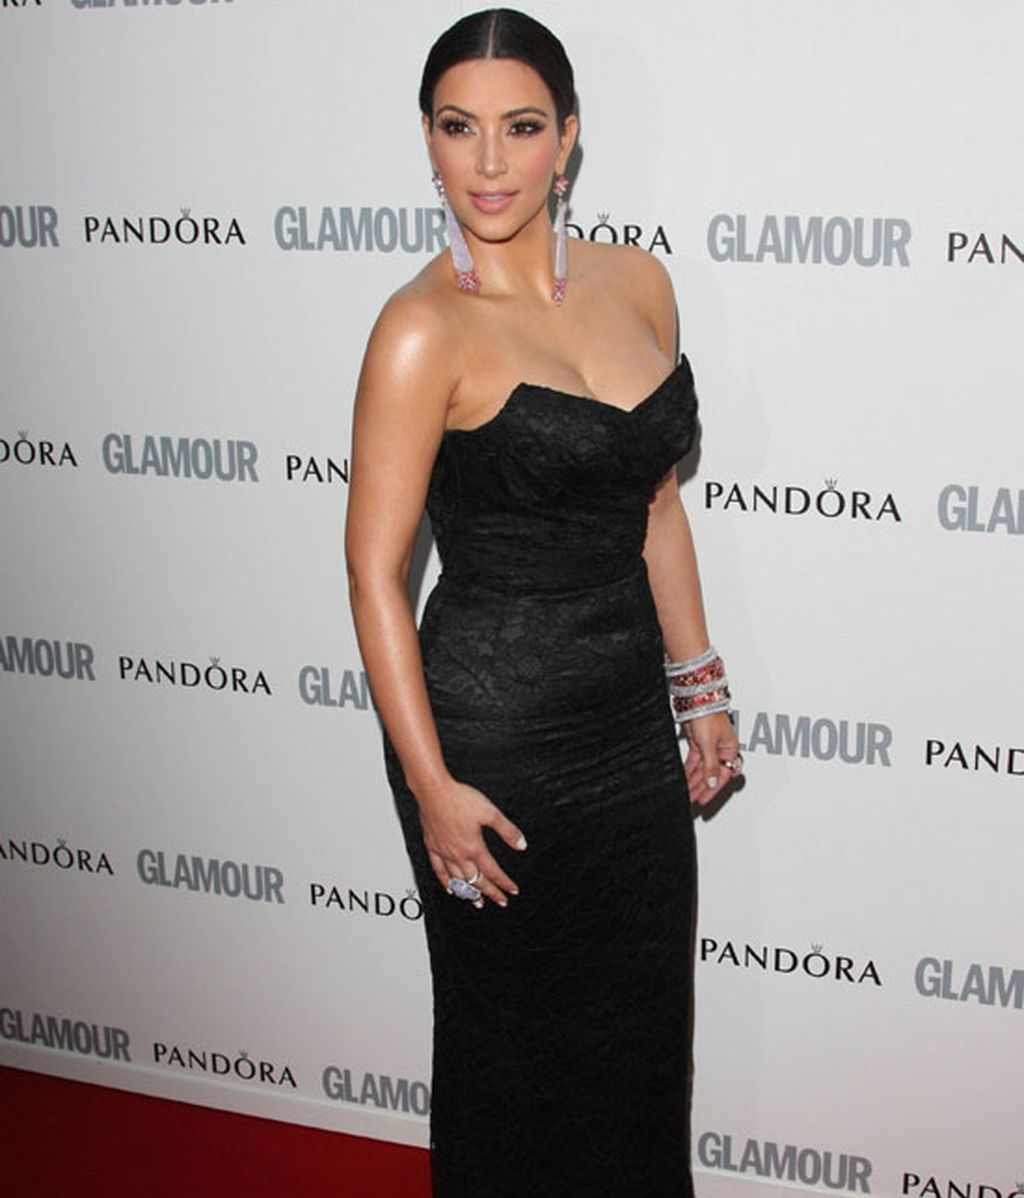 Premios Glamour Women of the Year sin glamour